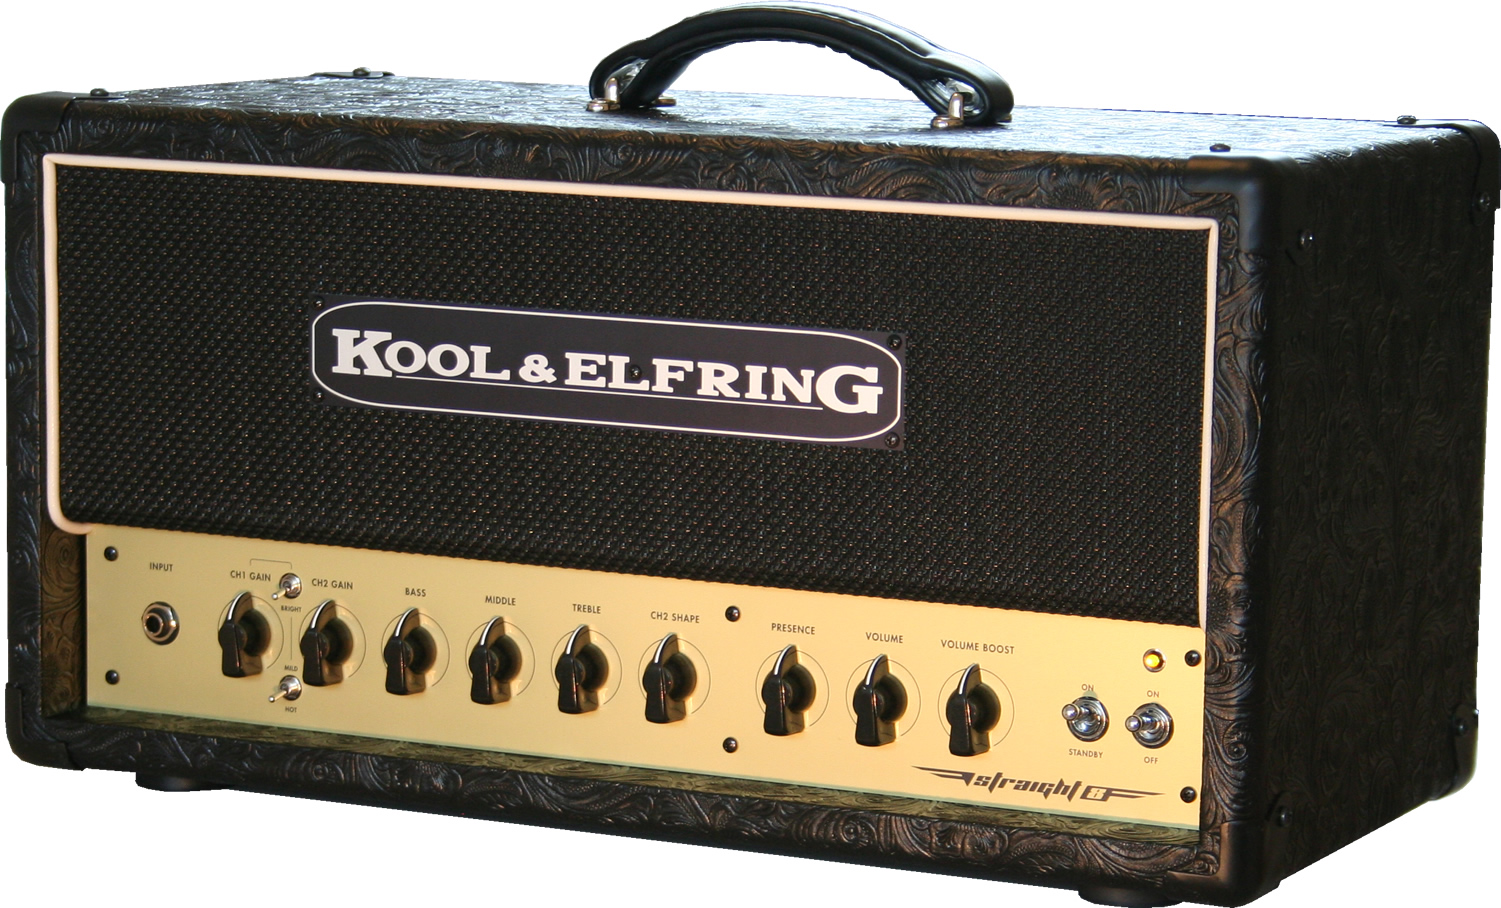 Kool and Elfring Straight 8 Deluxe